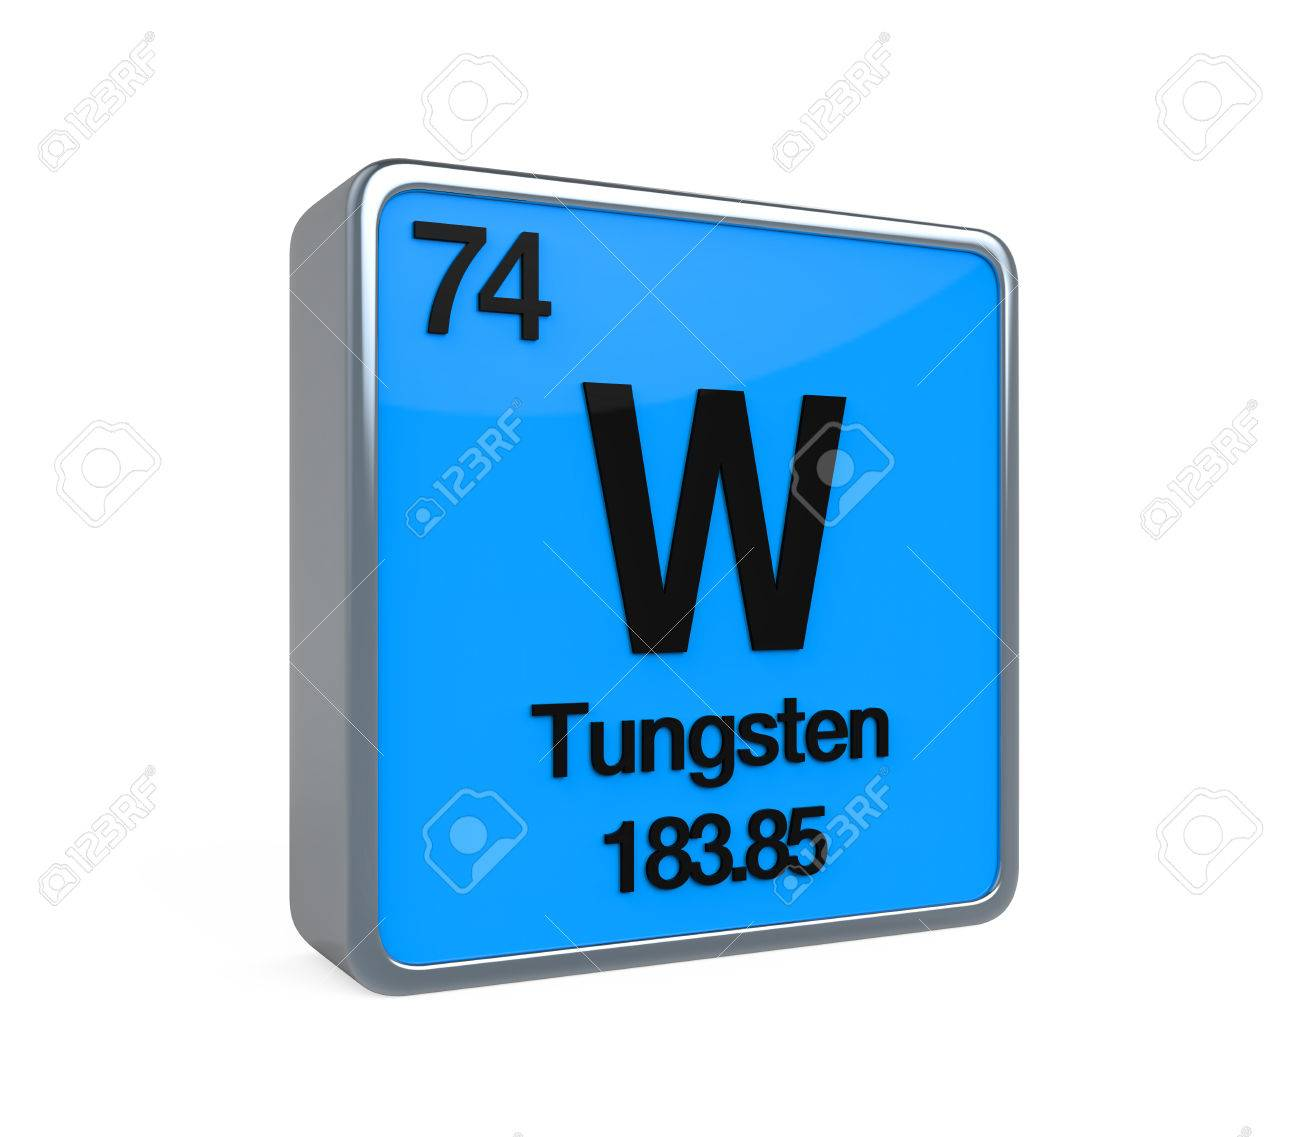 Tungsten element periodic table stock photo picture and royalty stock photo tungsten element periodic table urtaz Image collections